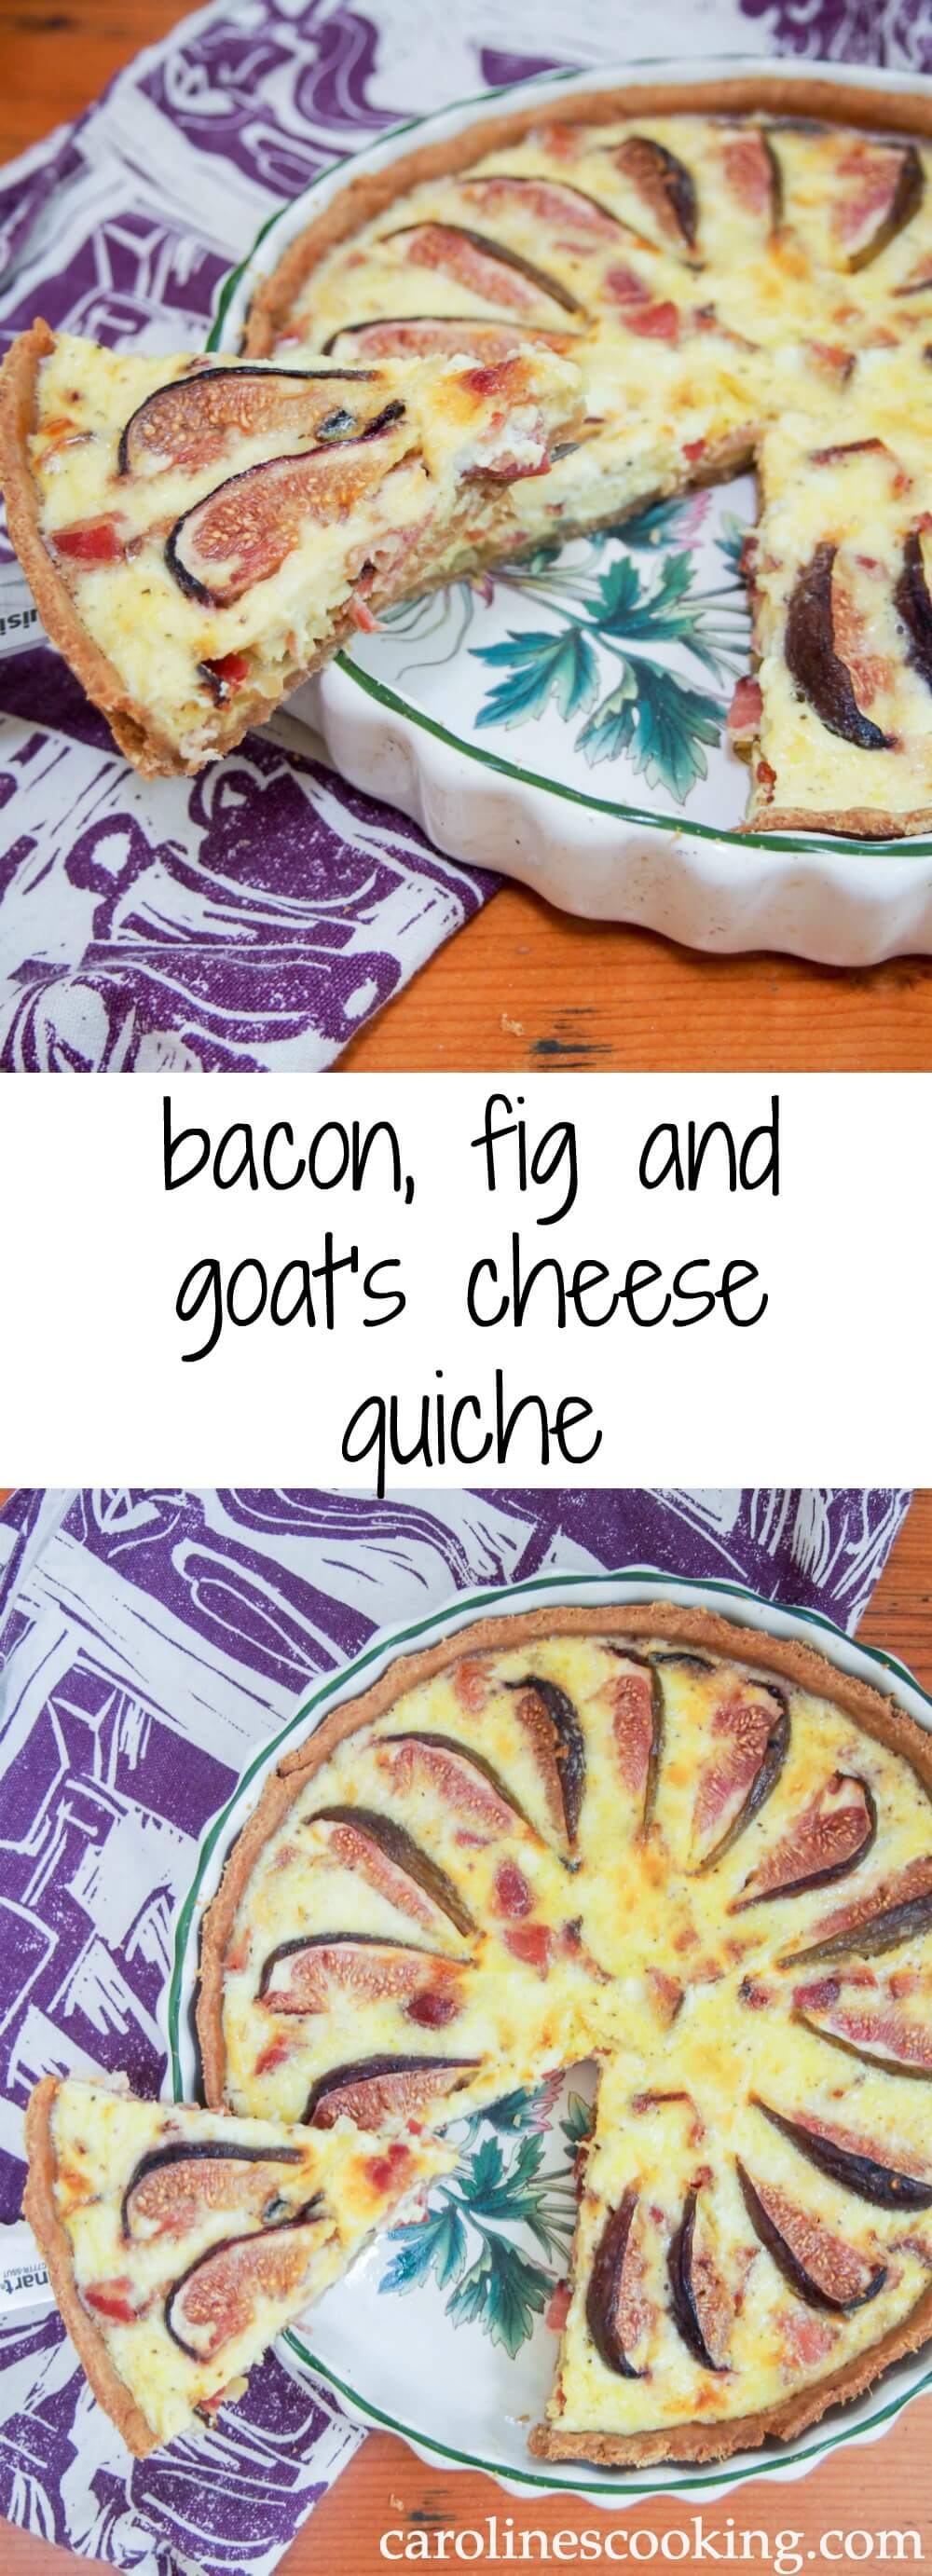 bacon, fig and goat's cheese quiche - a delicious combination of slightly salty bacon and sweet figs in a slightly tangy egg base with smooth goat's cheese mixed through.